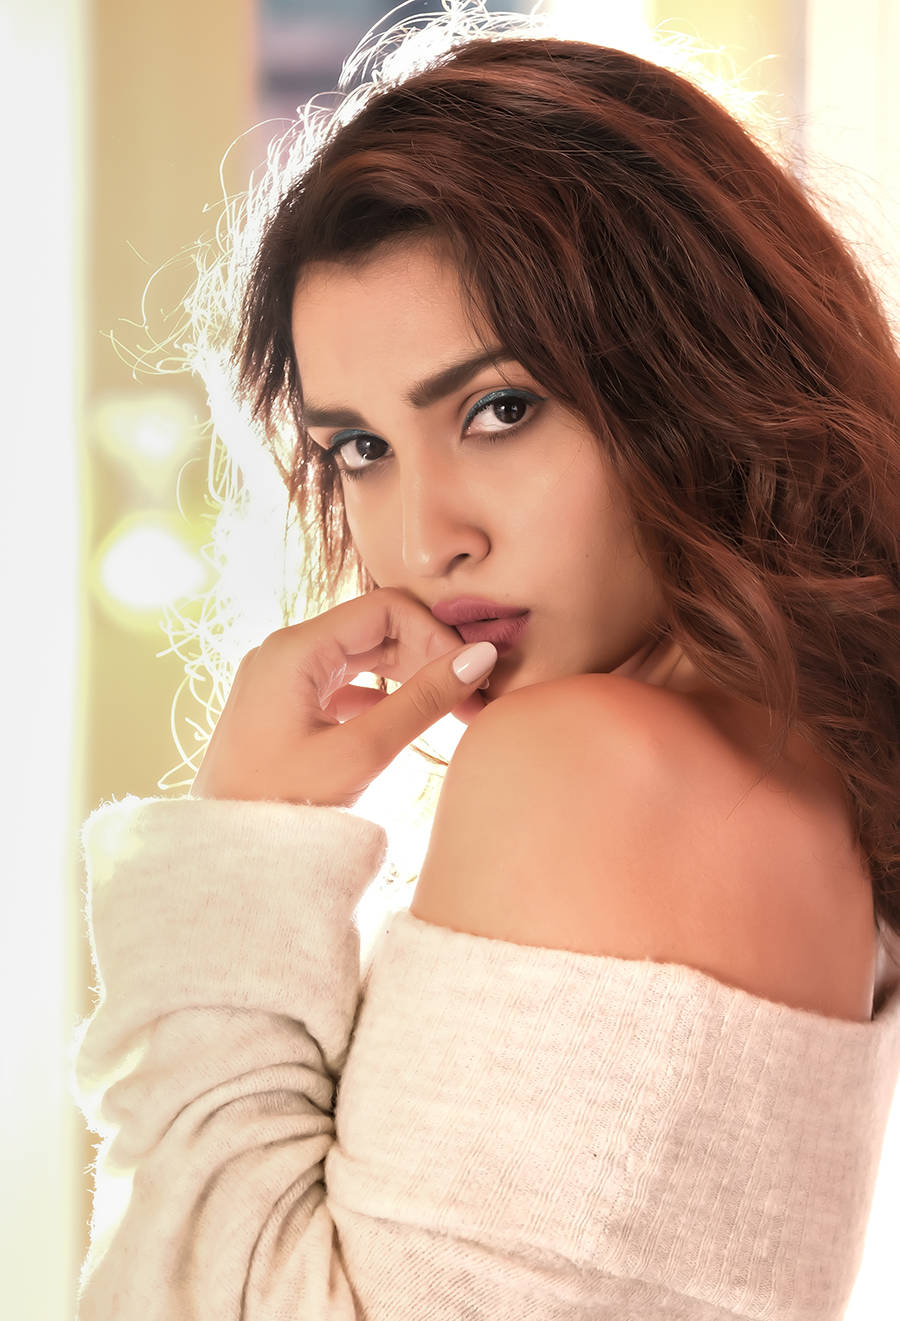 Gorgeous photoshoots of Jahnavi Dhanrajgir who's excited for her debut in Bolo Hau